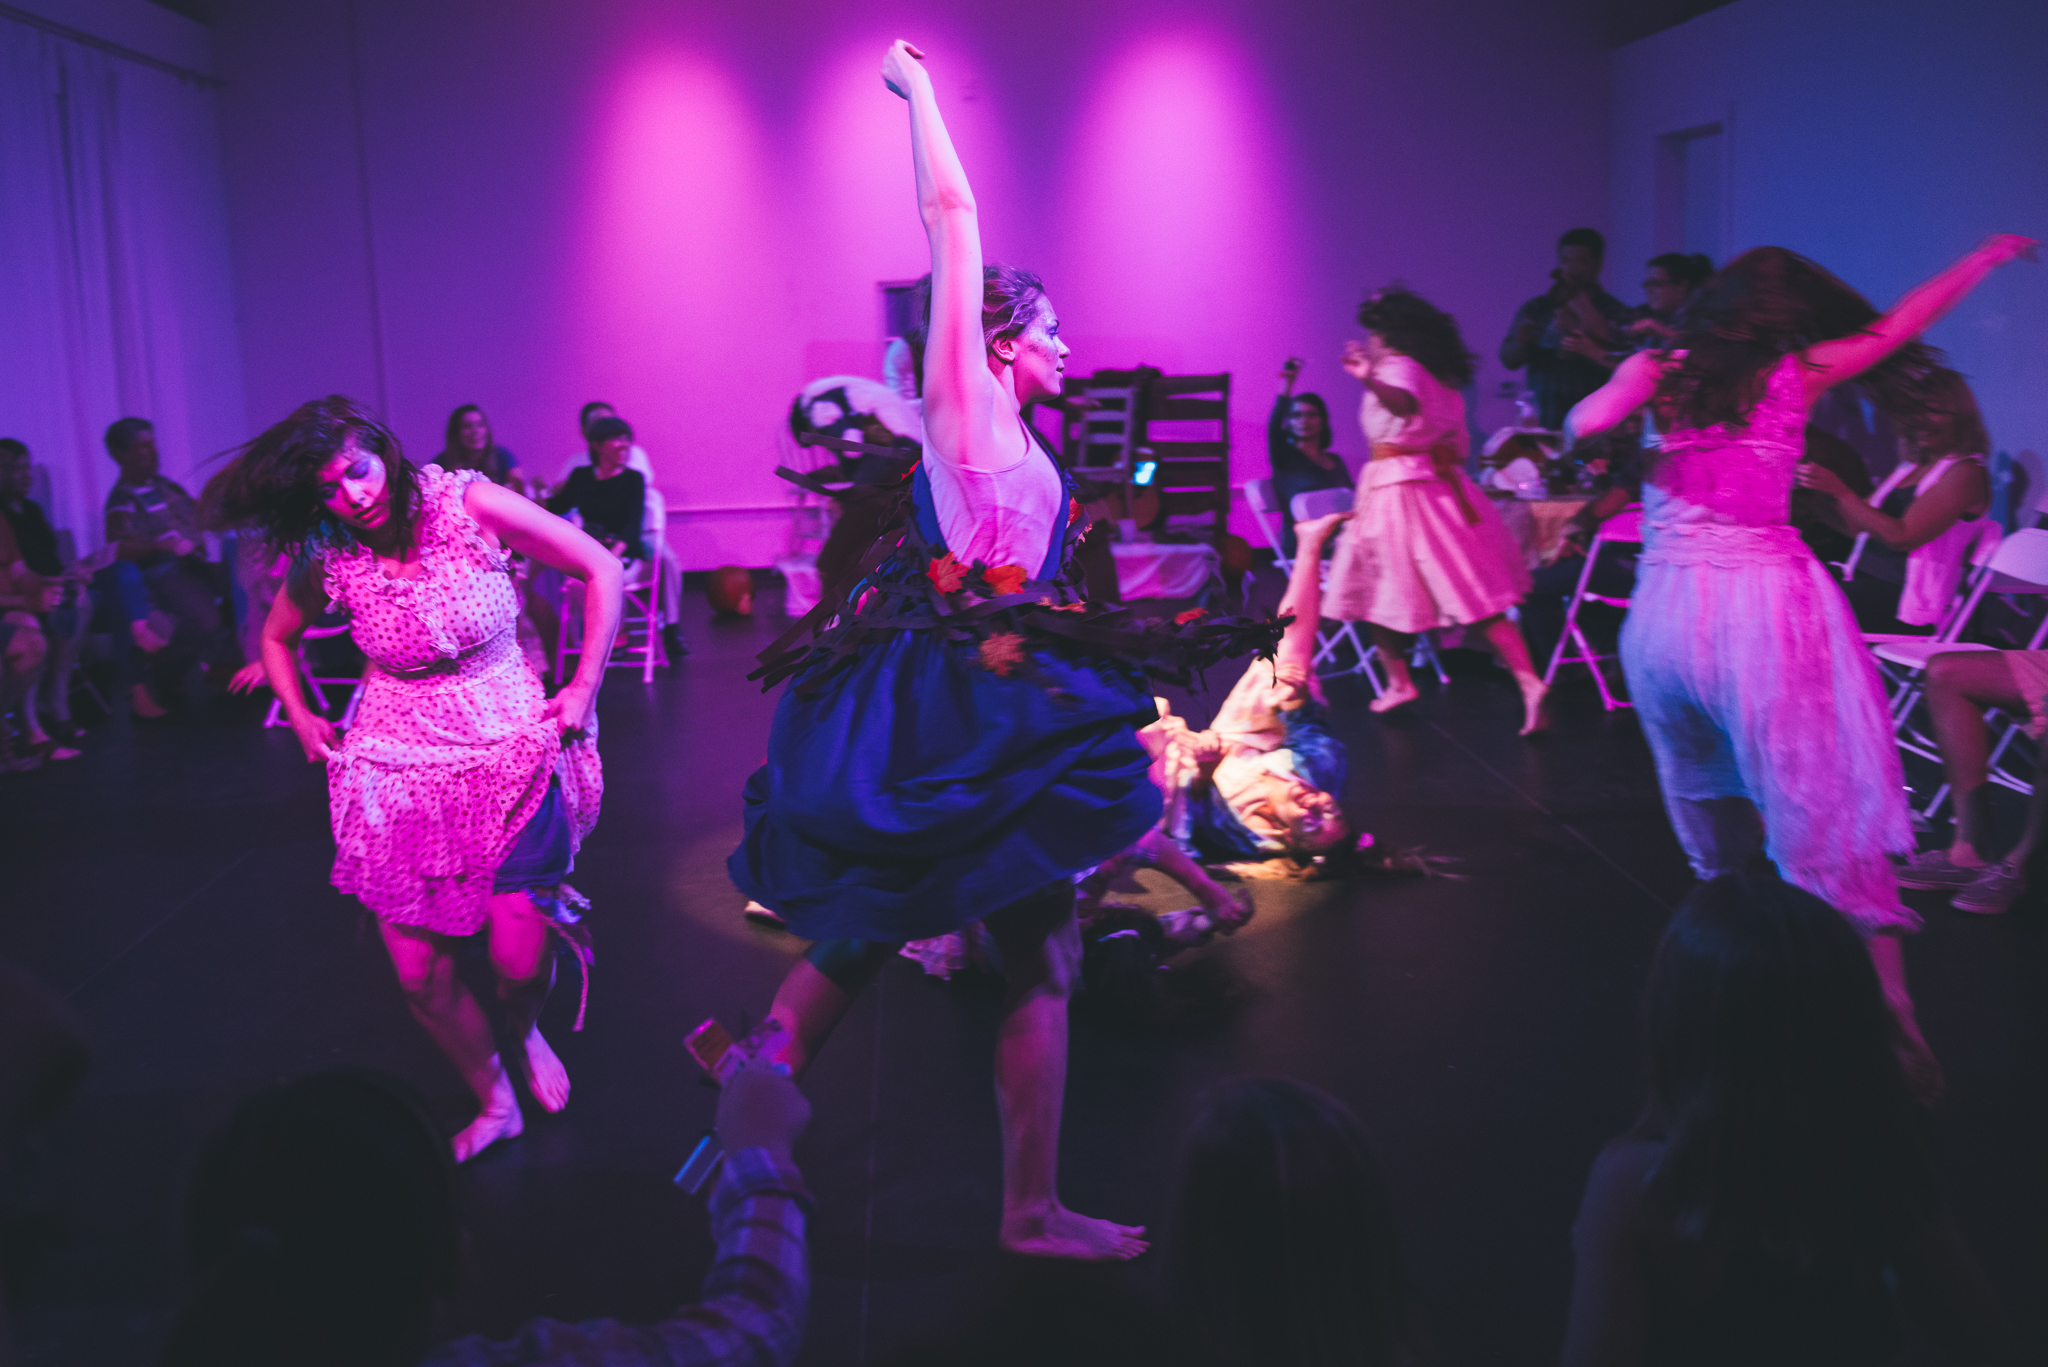 Group dances onstage during immersive theater performance in downtown Austin Texas